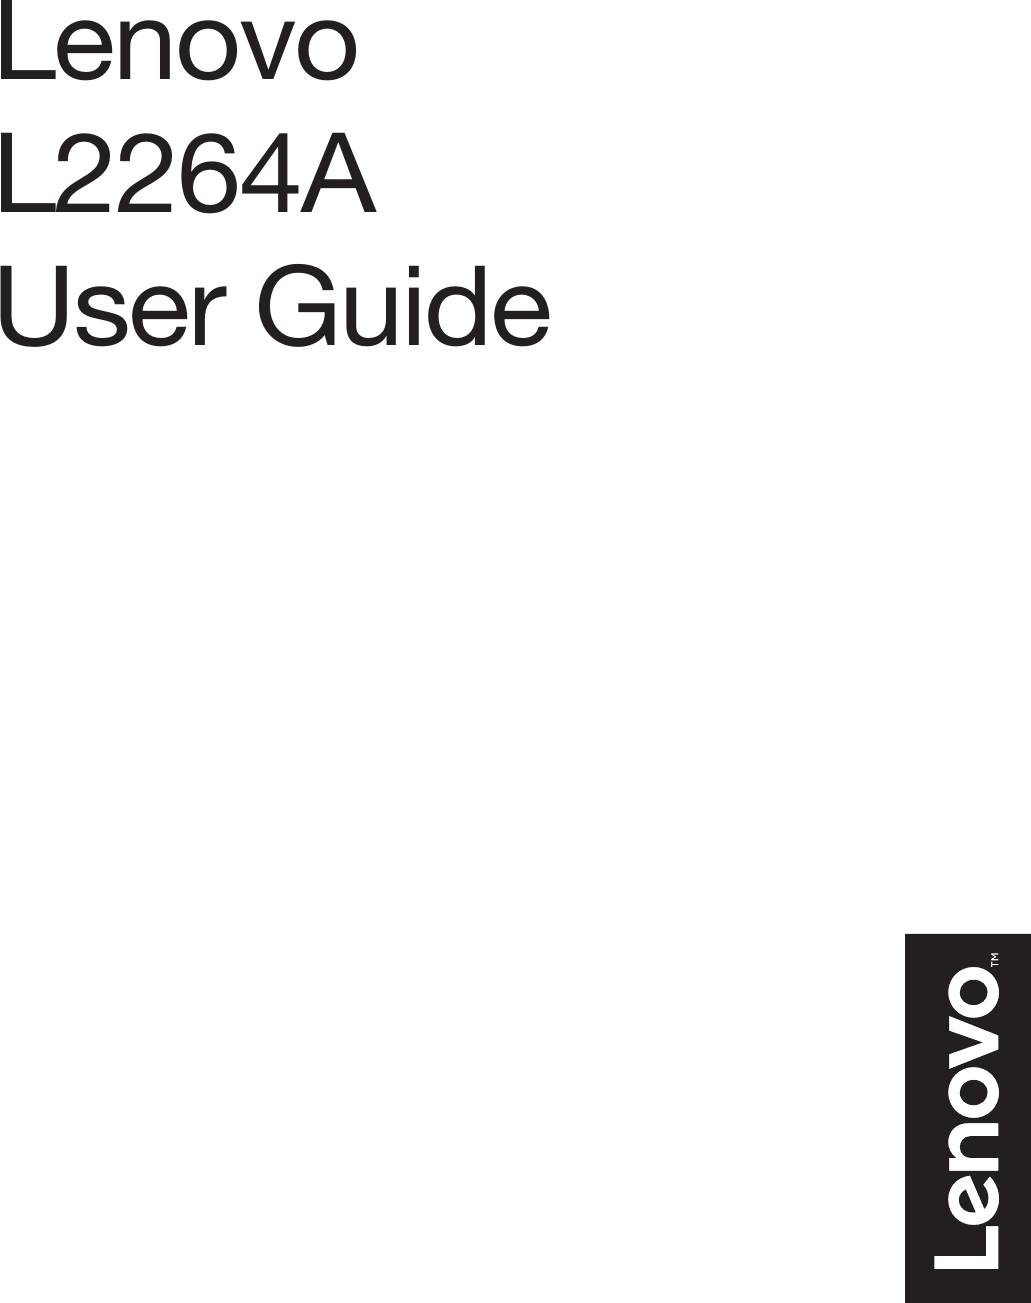 Lenovo Li2264D En Ug V1.0 201603 User Manual (English